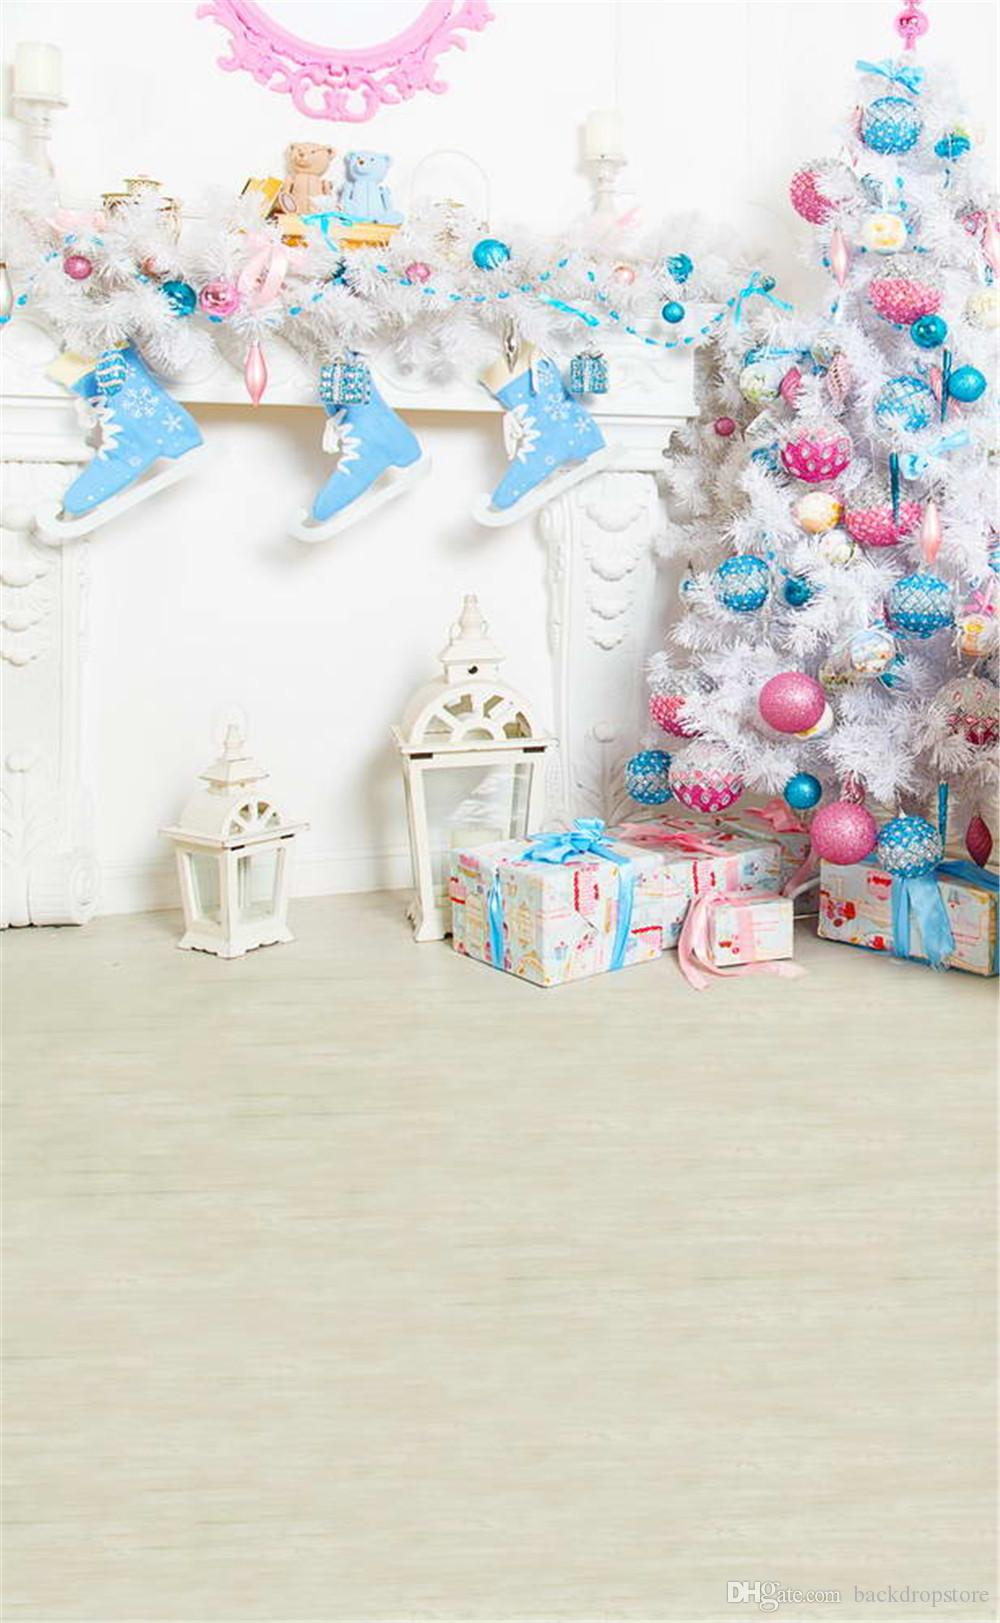 2021 Indoor Photography Backdrops Vinyl White Christmas Tree With Pink Blue Balls Gift Boxes Toy Bear Kids Baby Winter Holiday Photo Background From Backdropstore 16 73 Dhgate Com